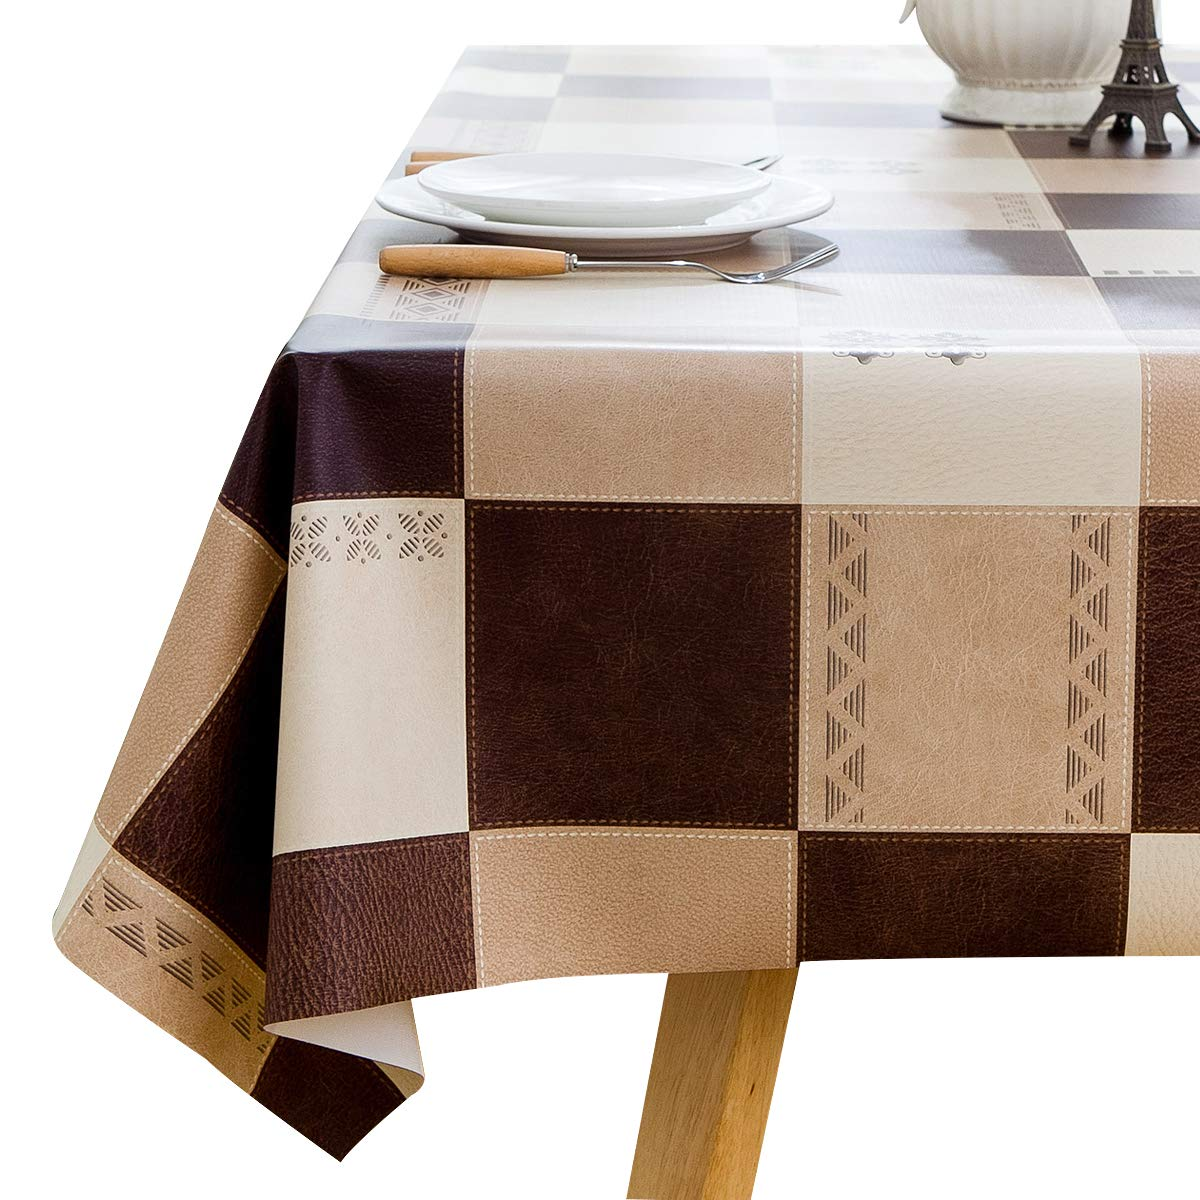 Square Vinyl Oilcloth Tablecloth Water Resistant/Oil-proof Wipeable PVC Heavy Duty Plastic Tablecloths for Kitchen Small - Checker Tan and Dark Brown 54 x 54 Inch LOHASCASA